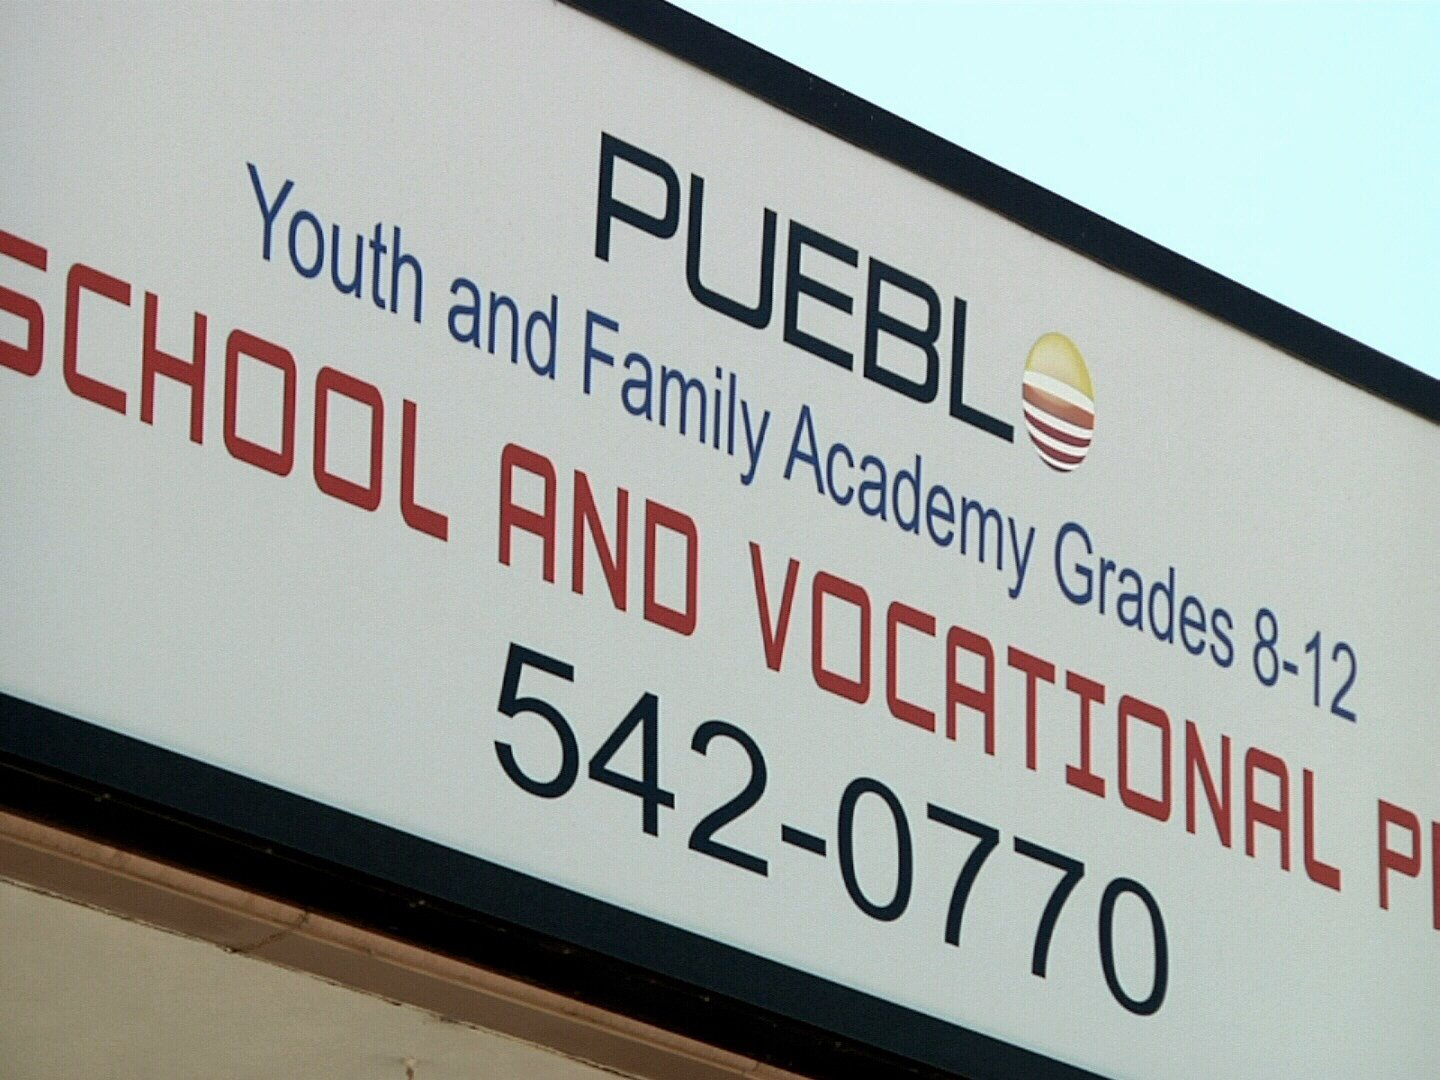 The Youth and Family Academy in Pueblo will not open for the 2017-2018 school year